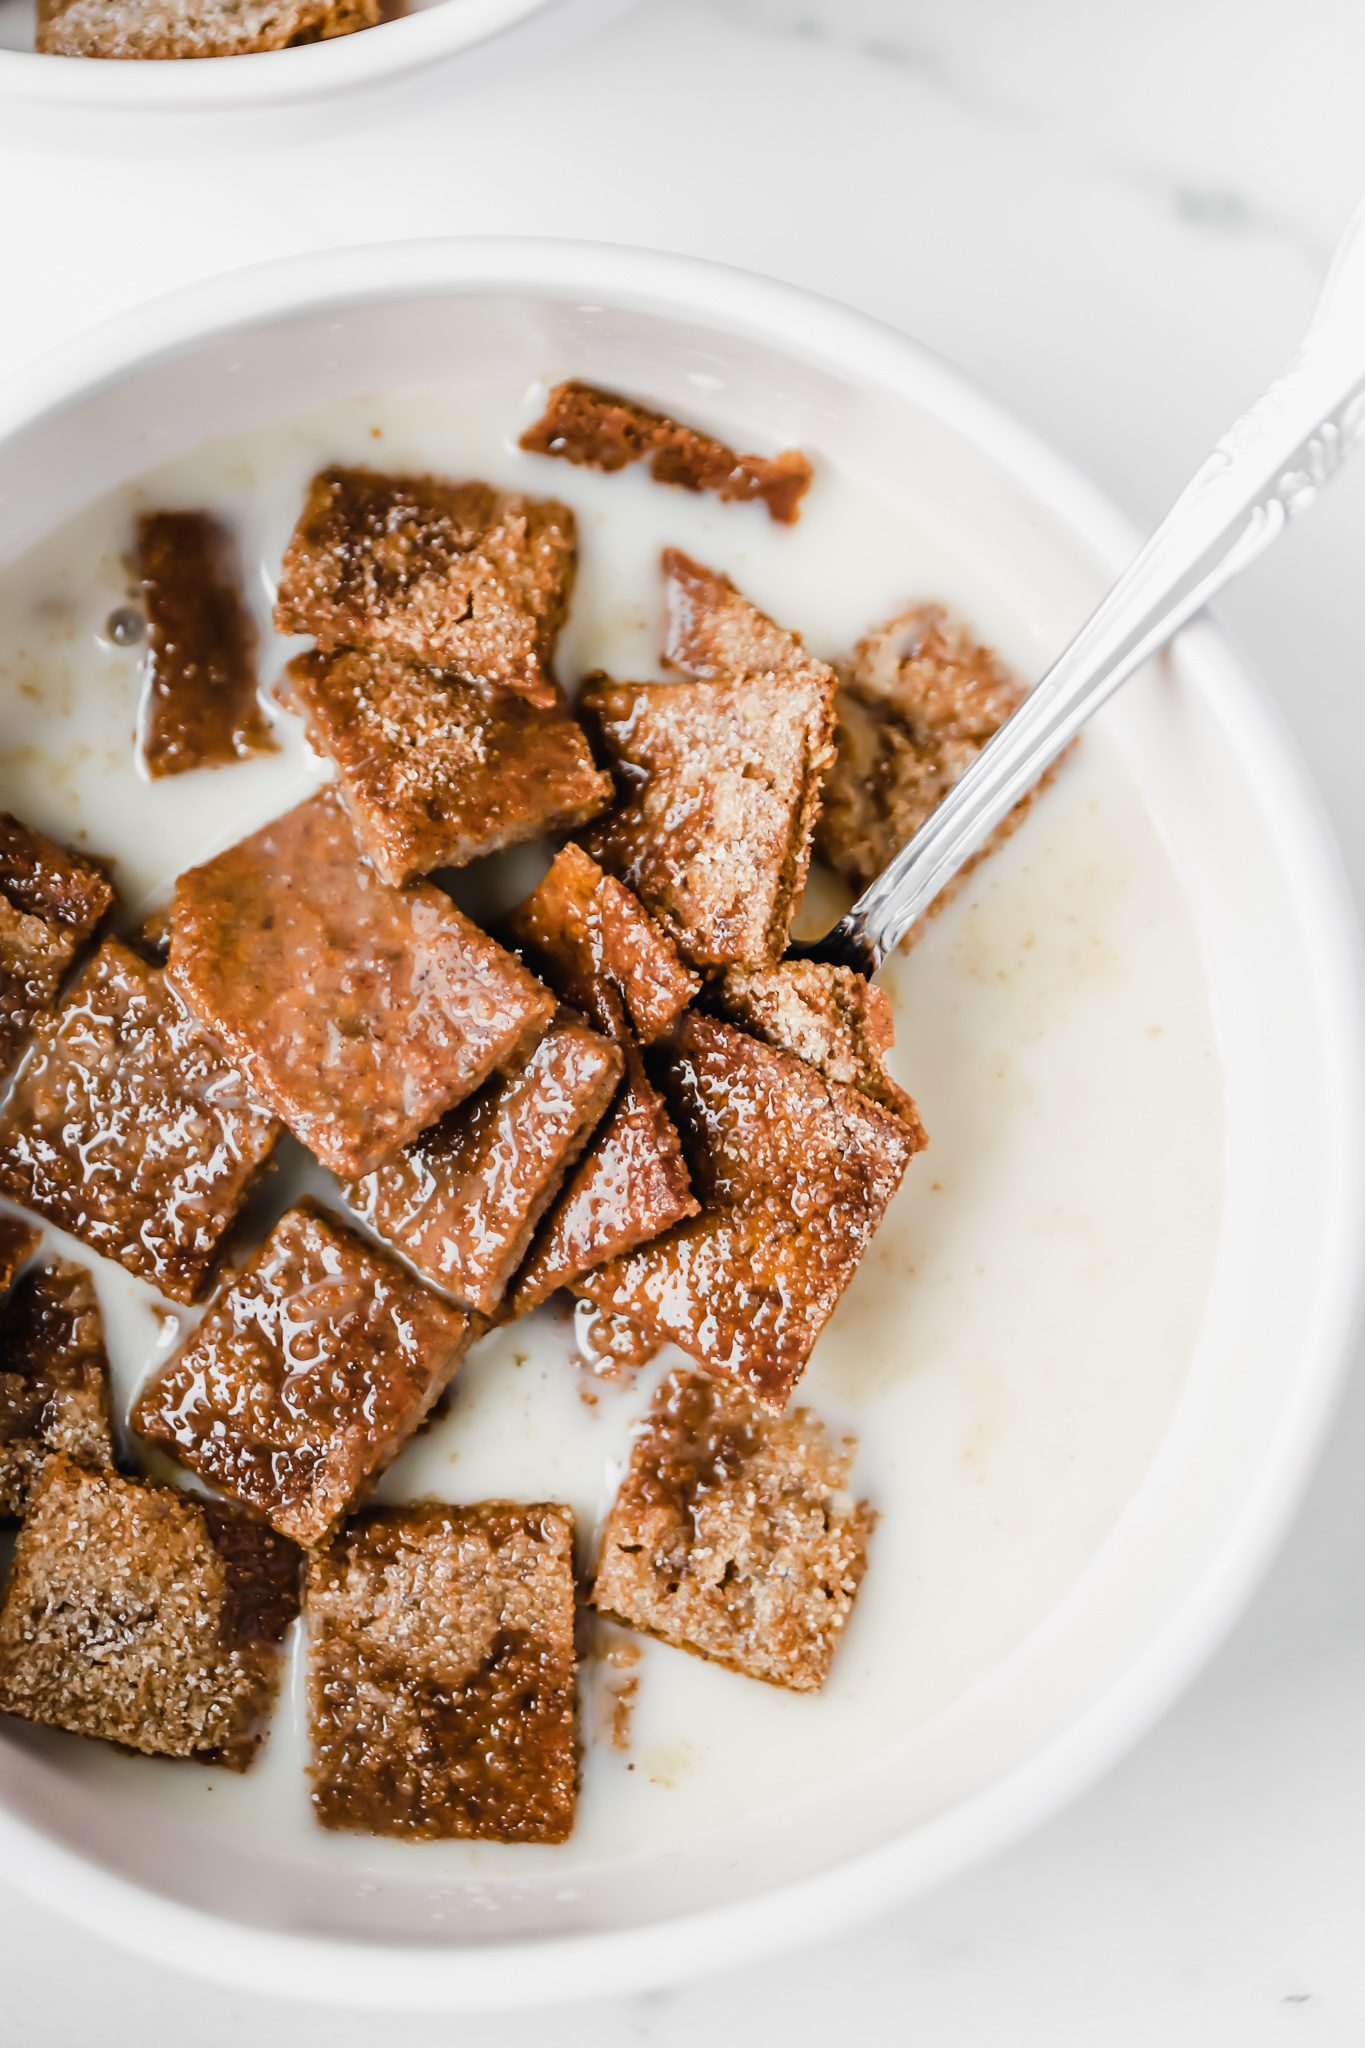 How to make cereal at home